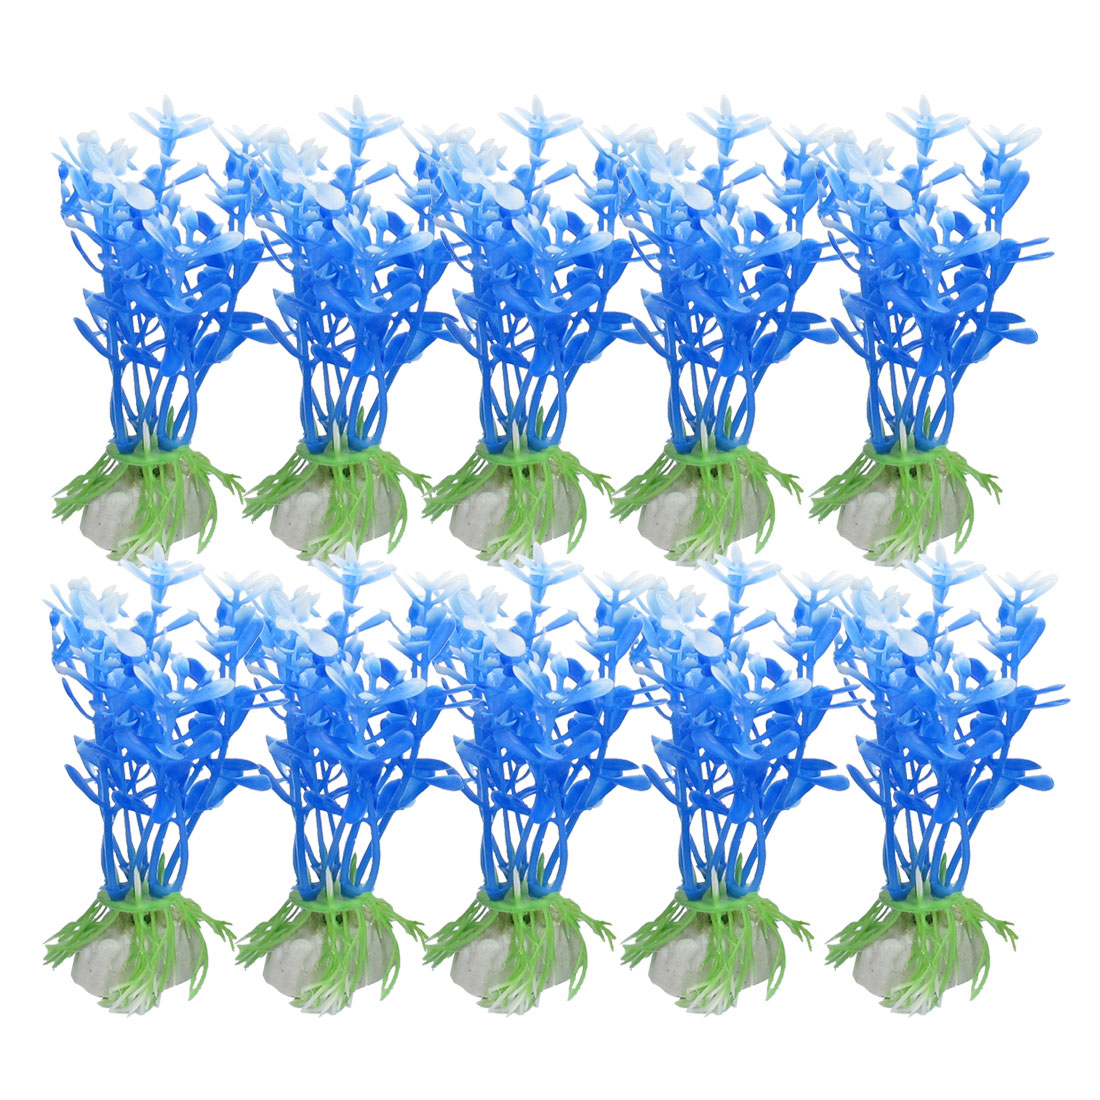 "10 Pcs 3.5"" Blue White Artificial Plastic Fish Tank Aquarium Ornament Plants"